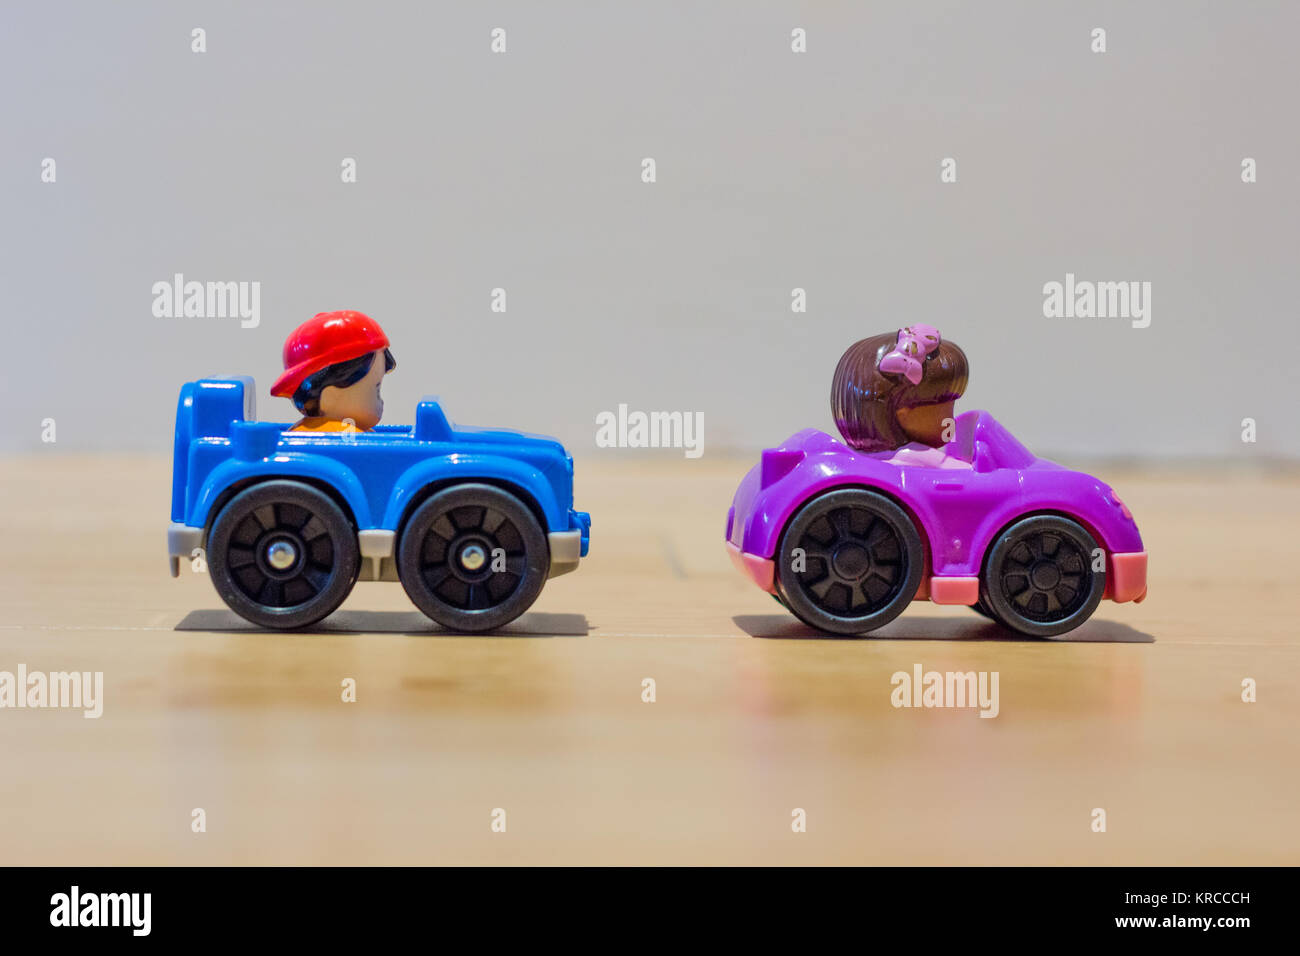 Two miniature toy cars on wooded floor with shadow reflection - Stock Image